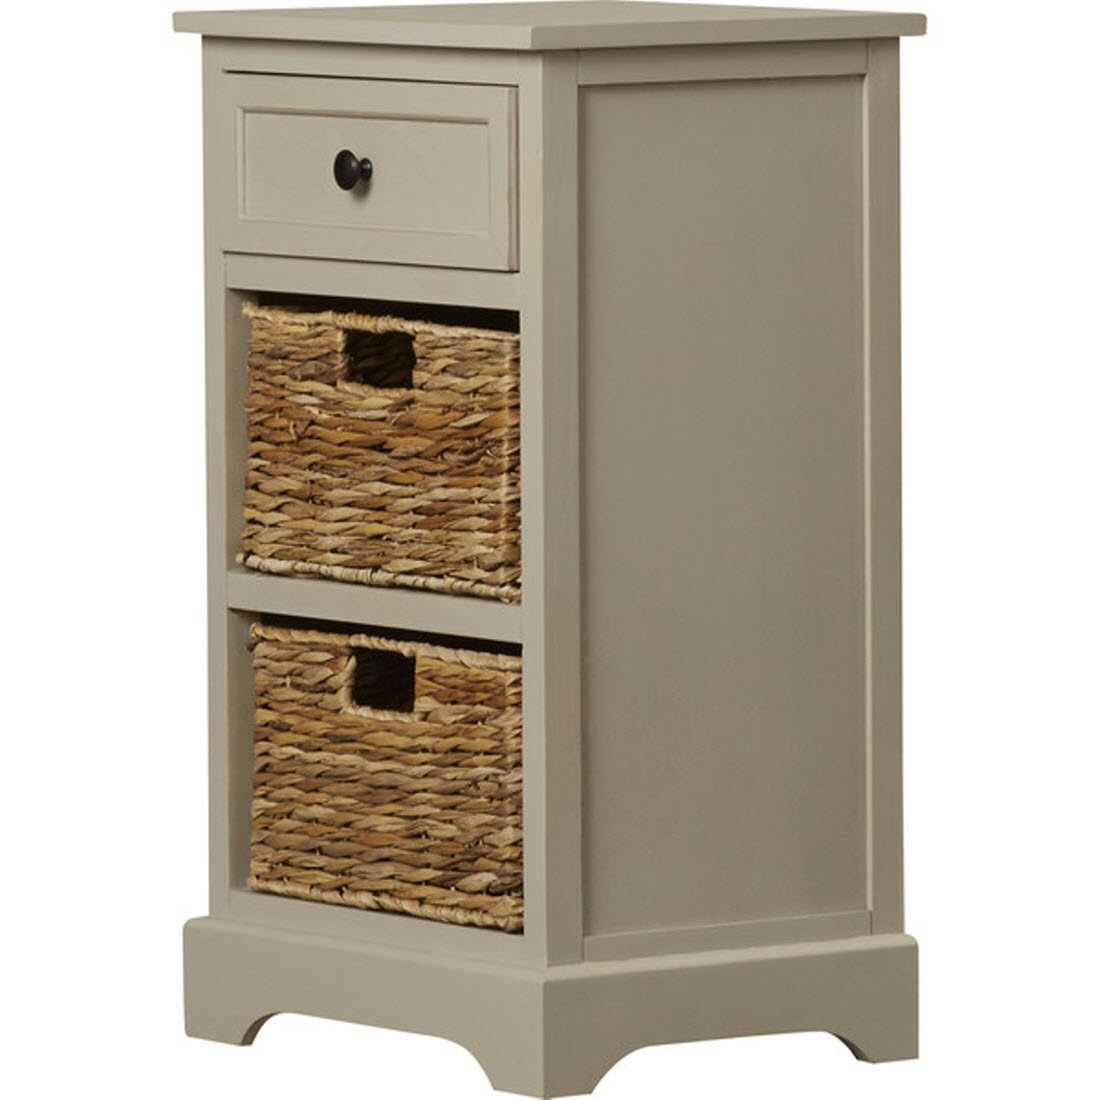 Nonatum Storage End Table- It Has 3 Drawers - Comes with Rattan Wicker Baskets - Rectangular Shape (Vintage Grey)